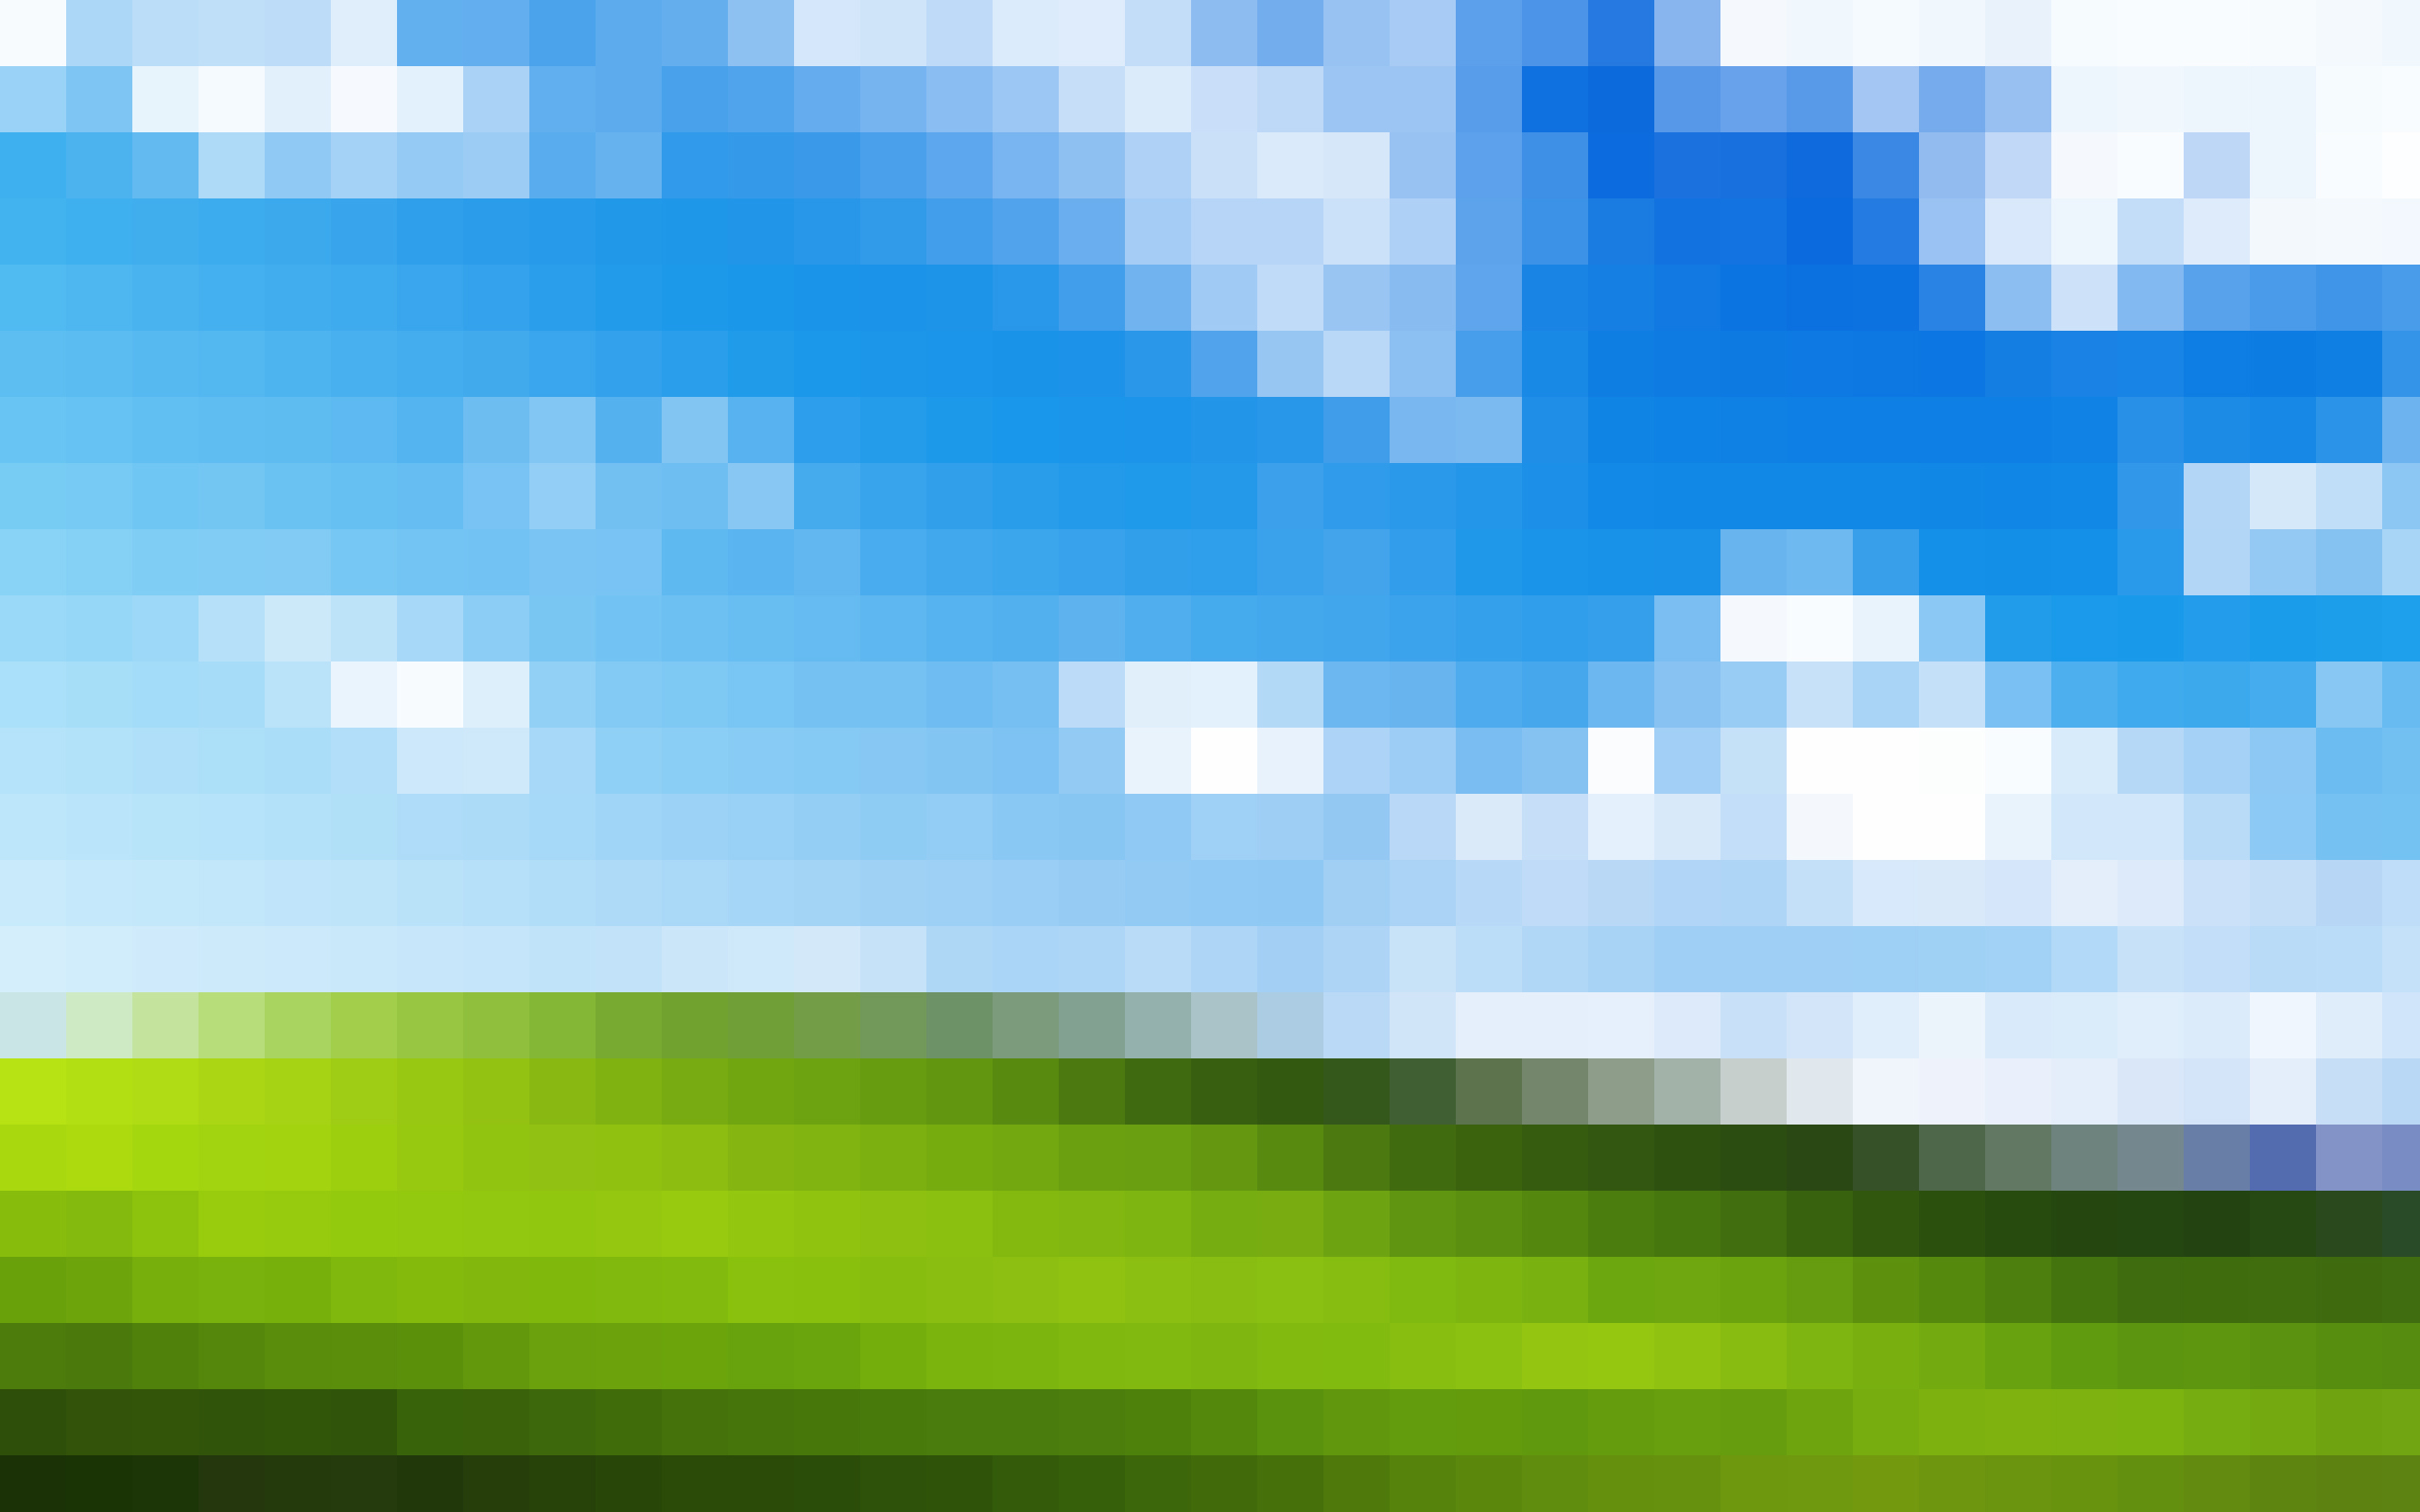 windows xp Pixels HD Wallpaper